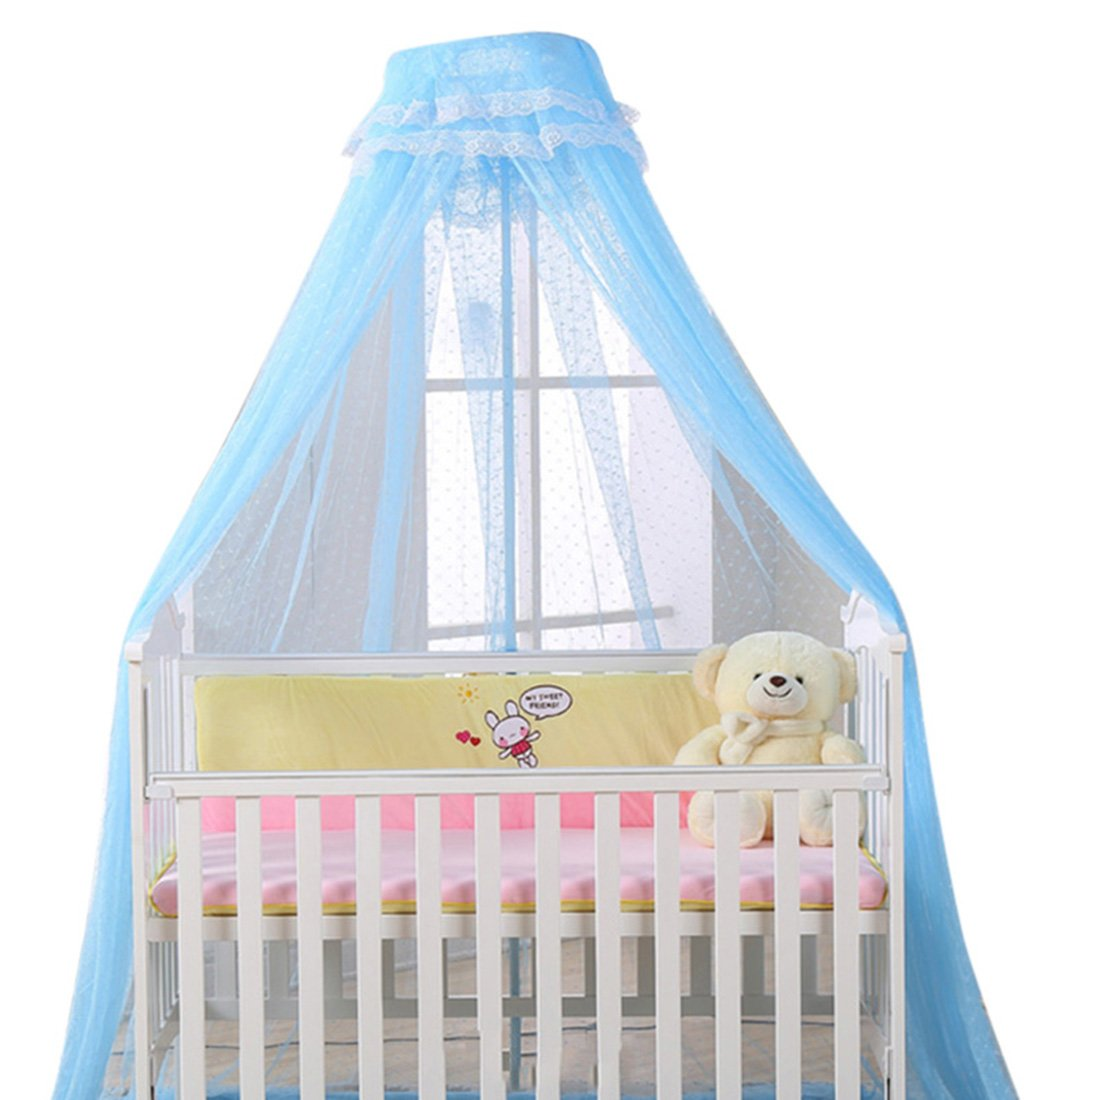 Freahap Baby Crib Netting Mosquito Net for Kids Bed Canopy Blue (Net + Holder)